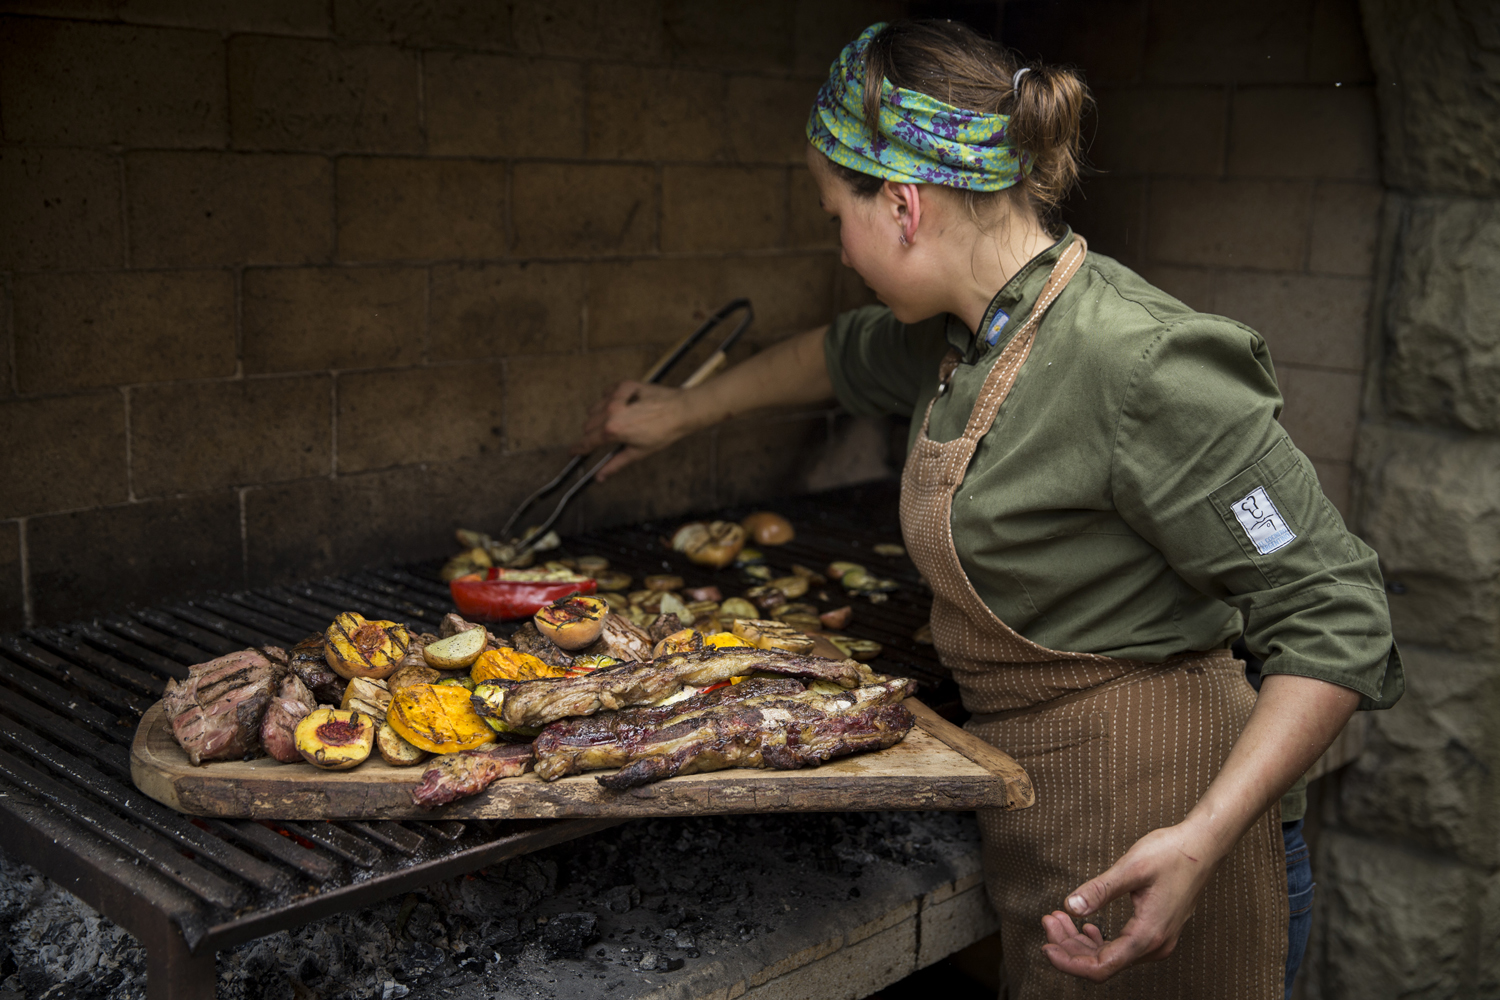 Our chef prepares an asado.